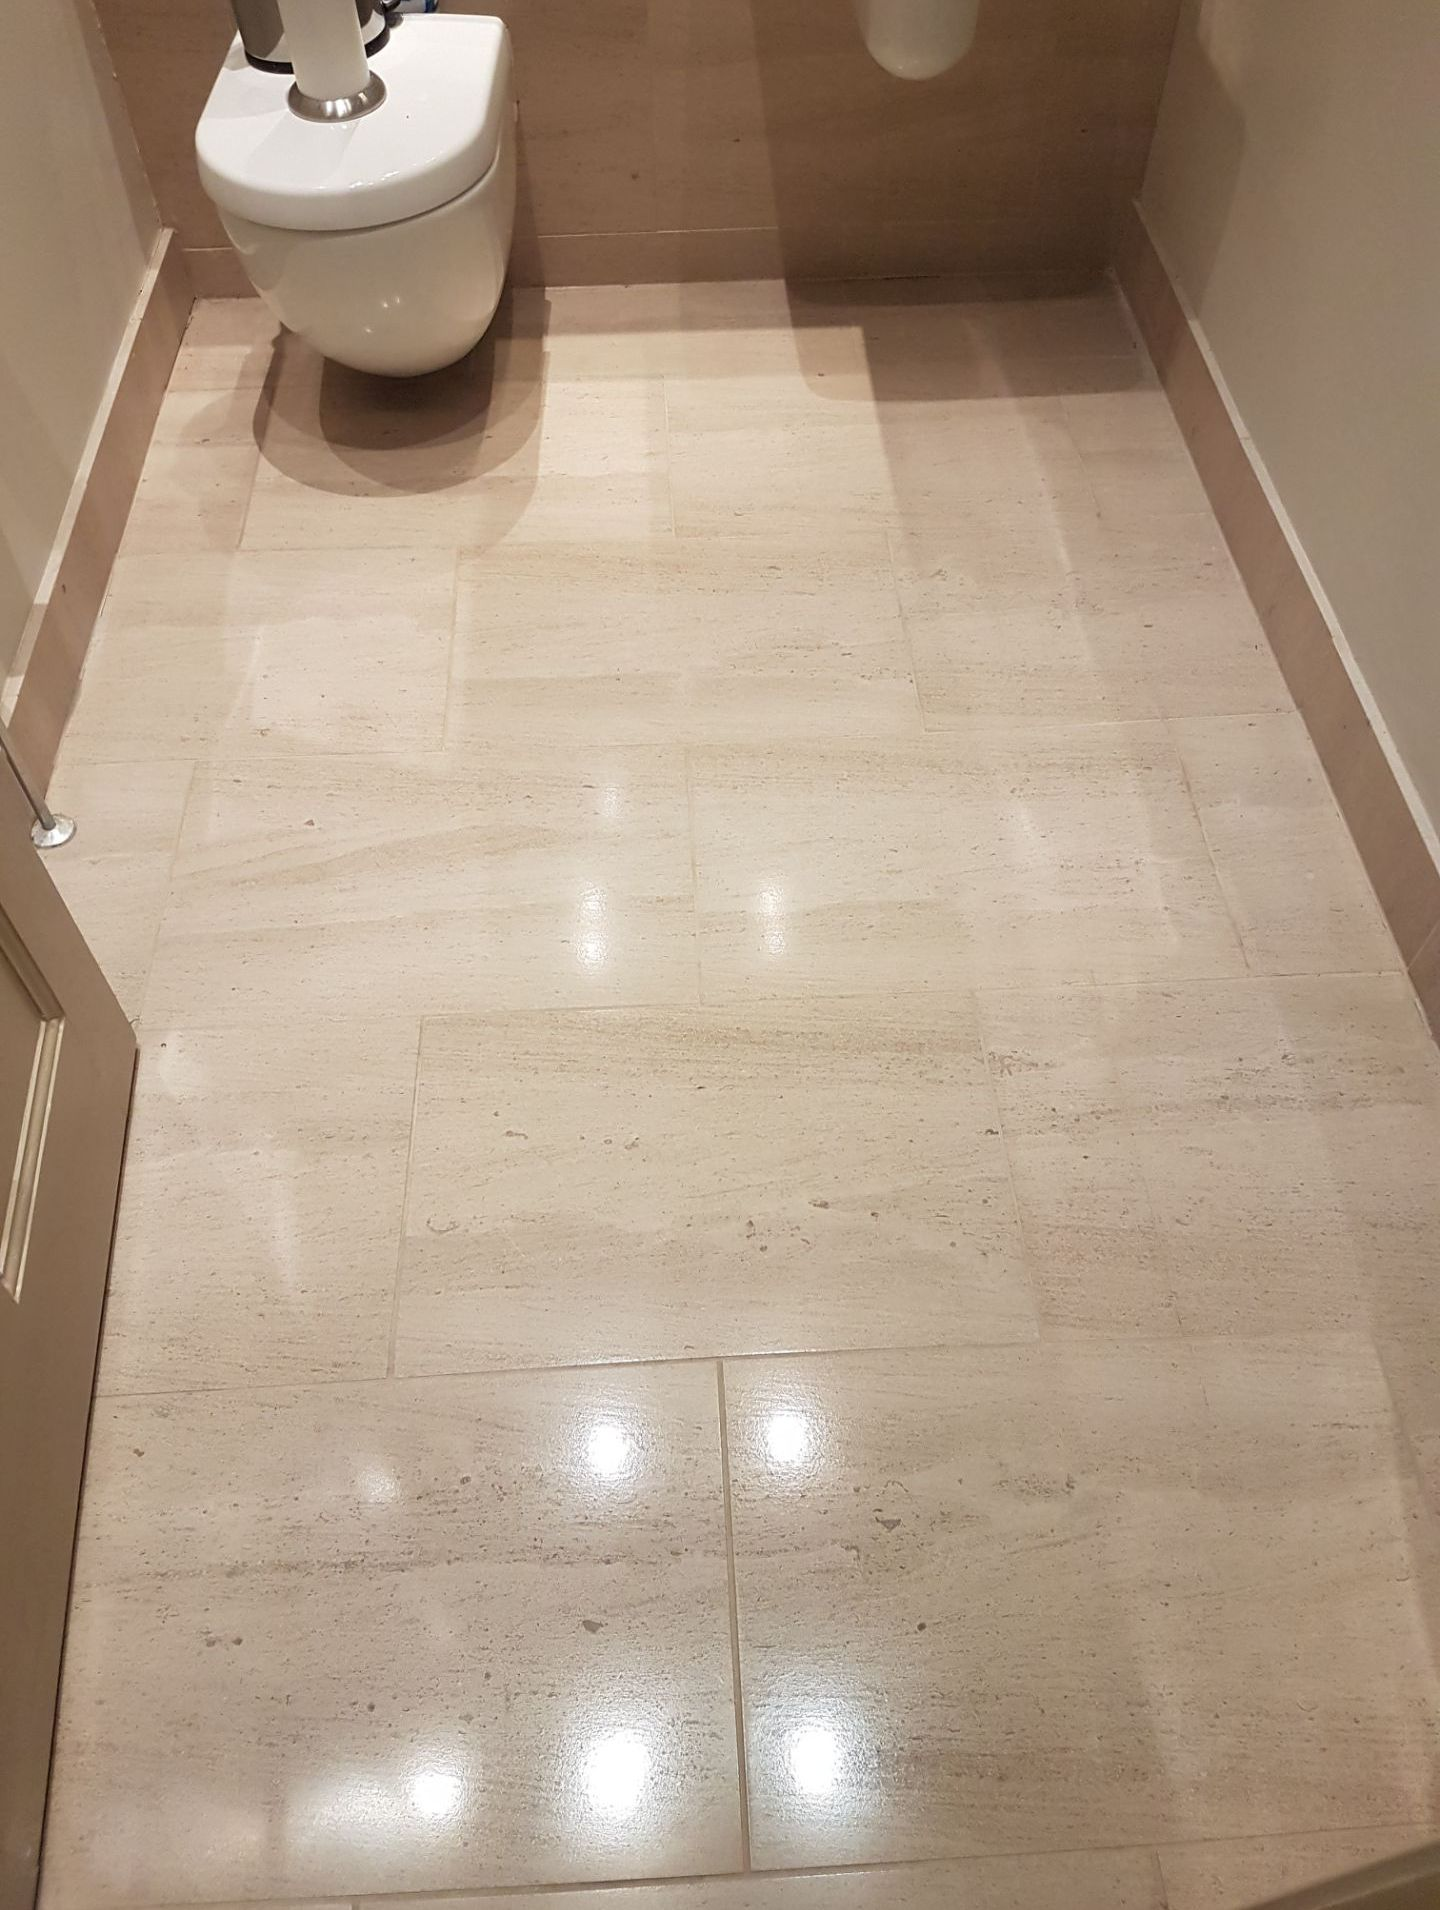 Limestone downstairs toilet Floor Merchiston after